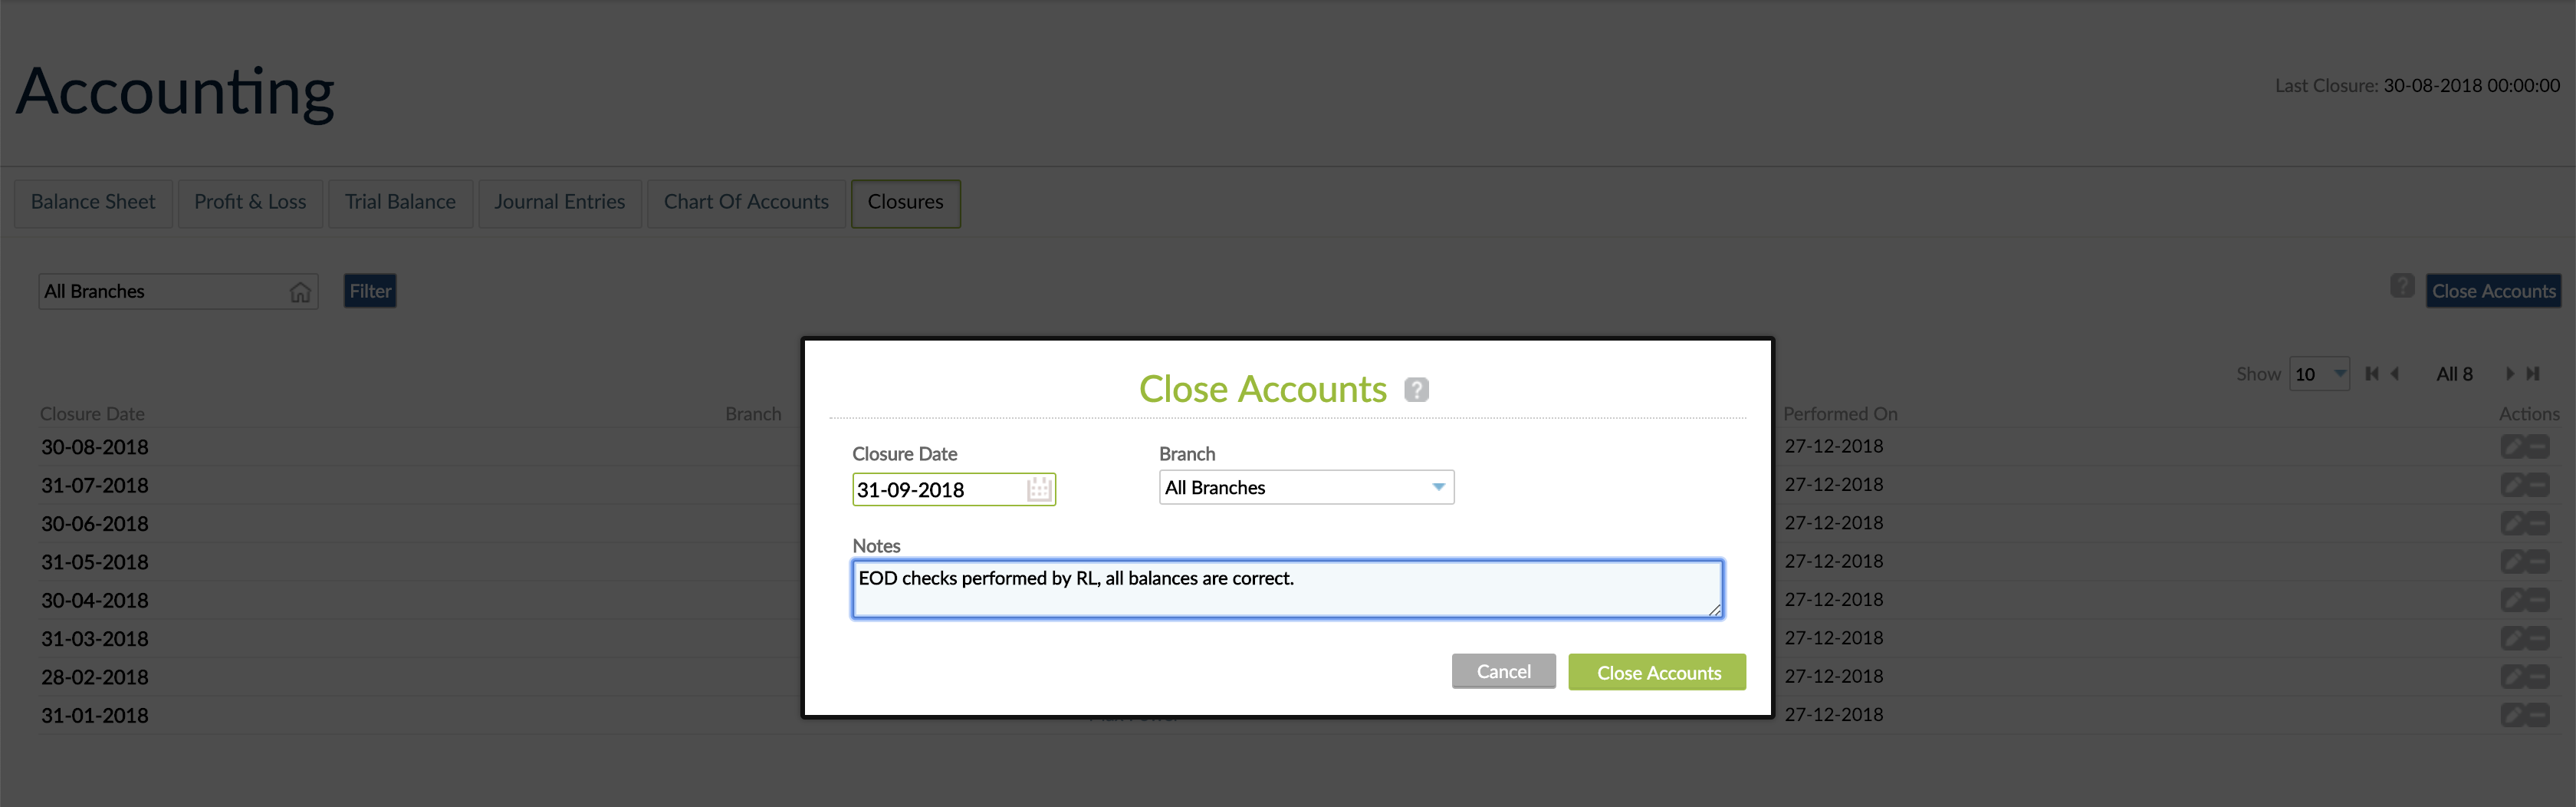 Close Accounts screen with Closure Date, Branch and Notes fields.